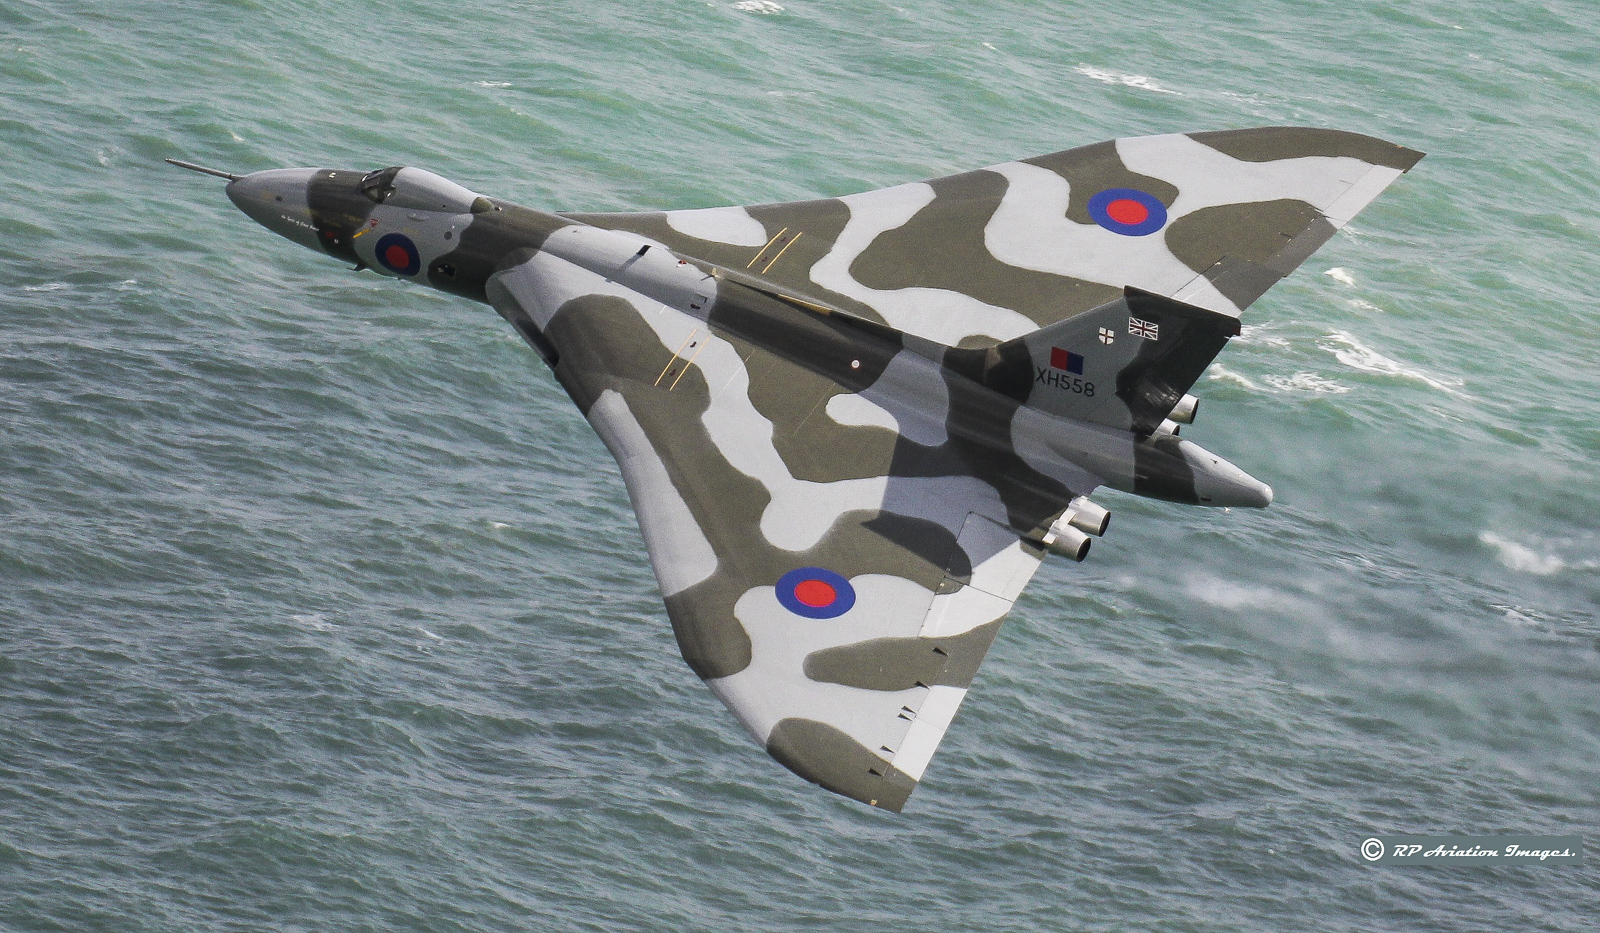 A fabulous view of XH558 as she roars over the water at Beachy Head in southern England. (photo by Robin Pettifer)